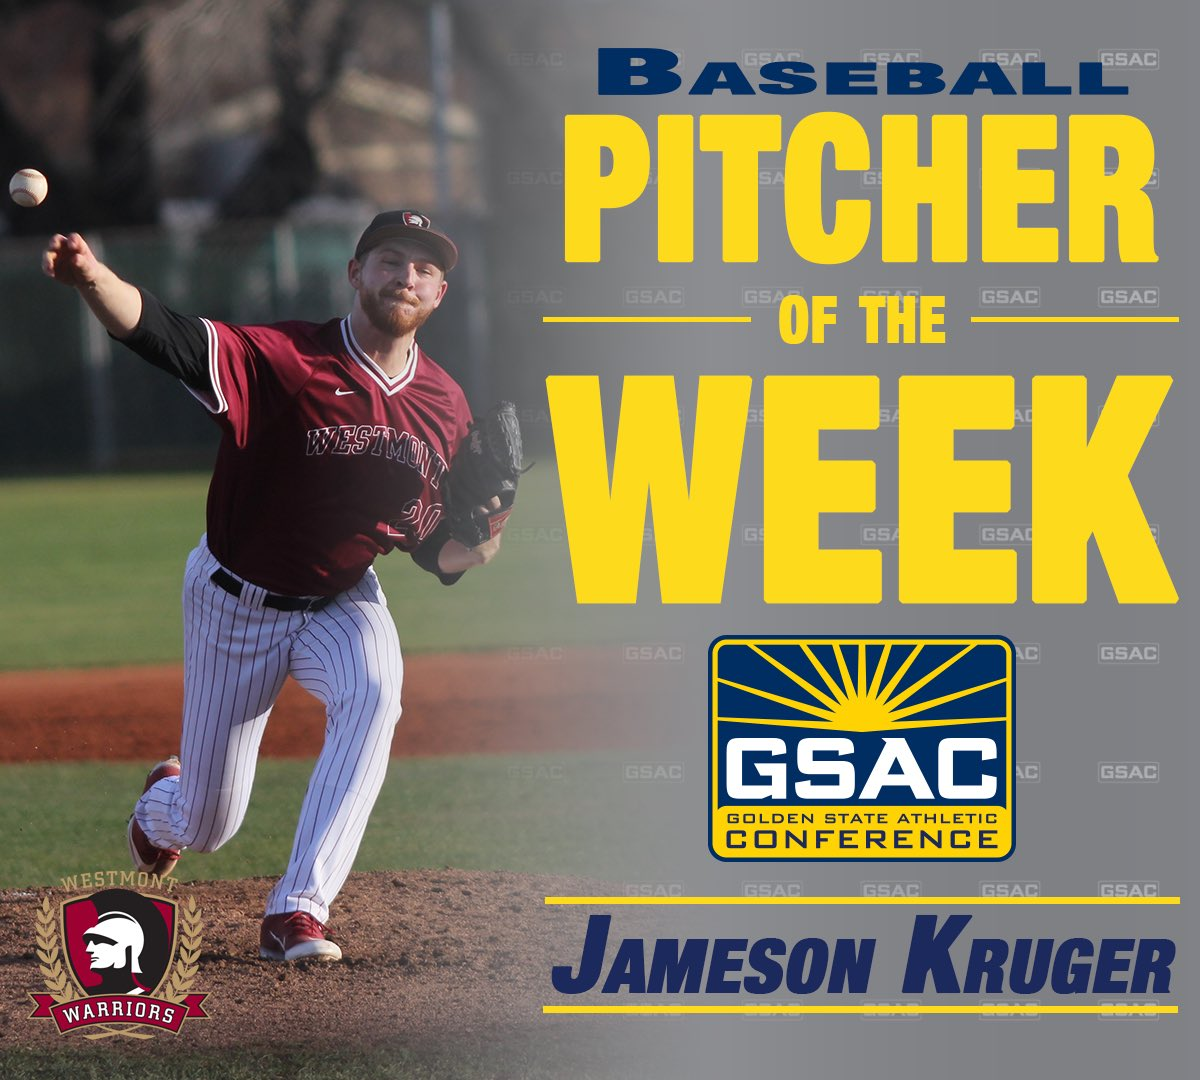 Congratulations to Jameson Kruger on being named Pitcher of the Week and Landon Riker on Player of the Week honors‼️⚾️  #POTW #NAIA #GSAC